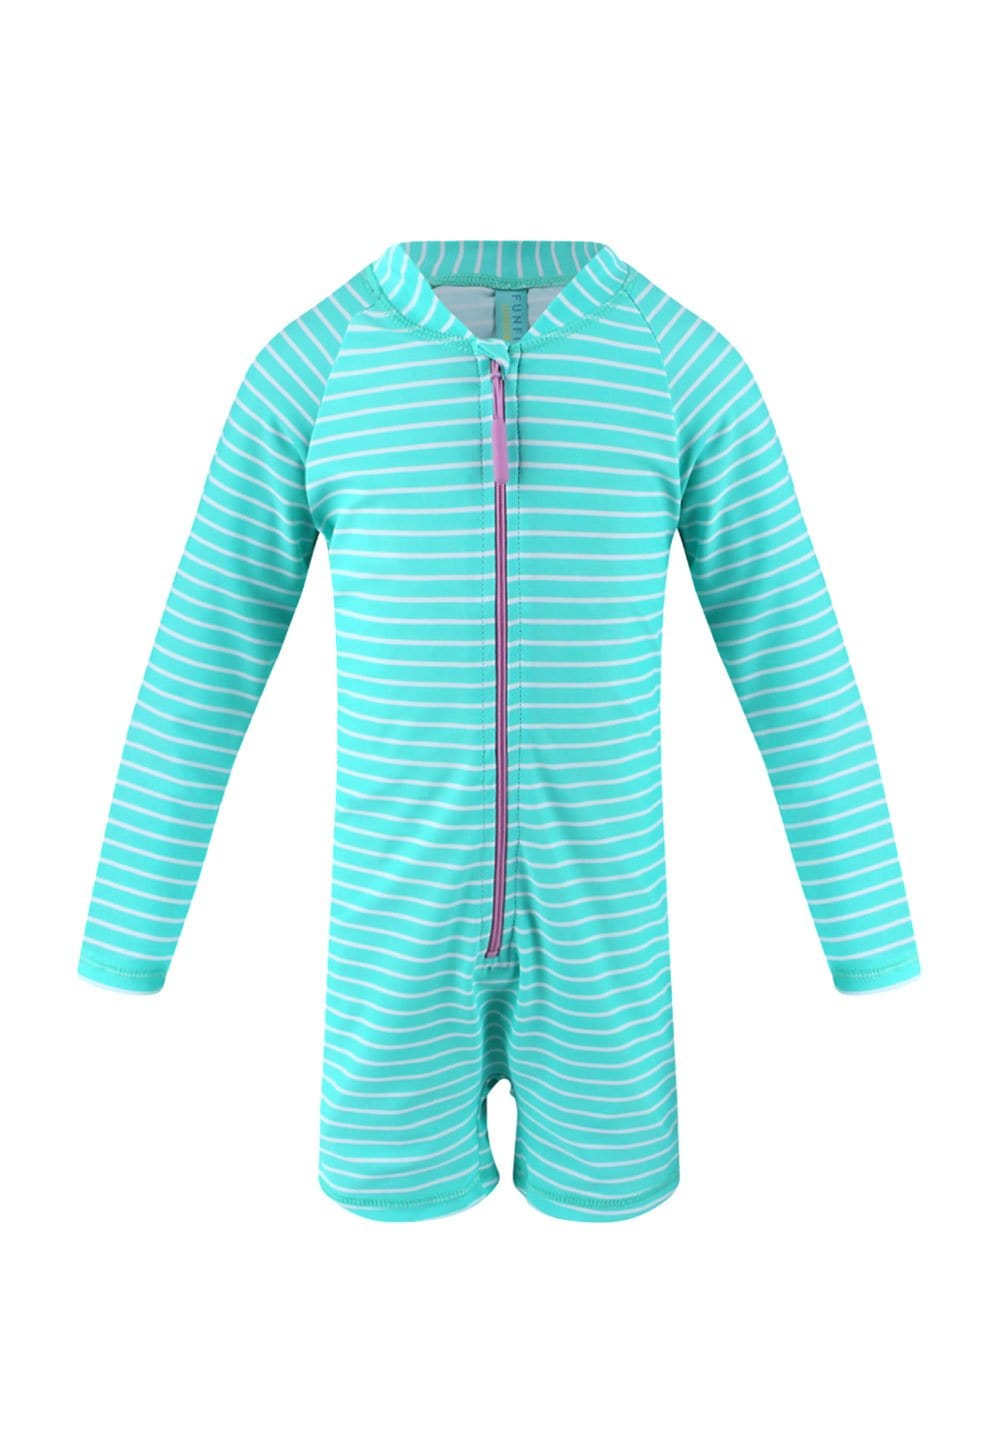 UPF50+ Junior Sunsuit (Unisex) in Bubblegum Print